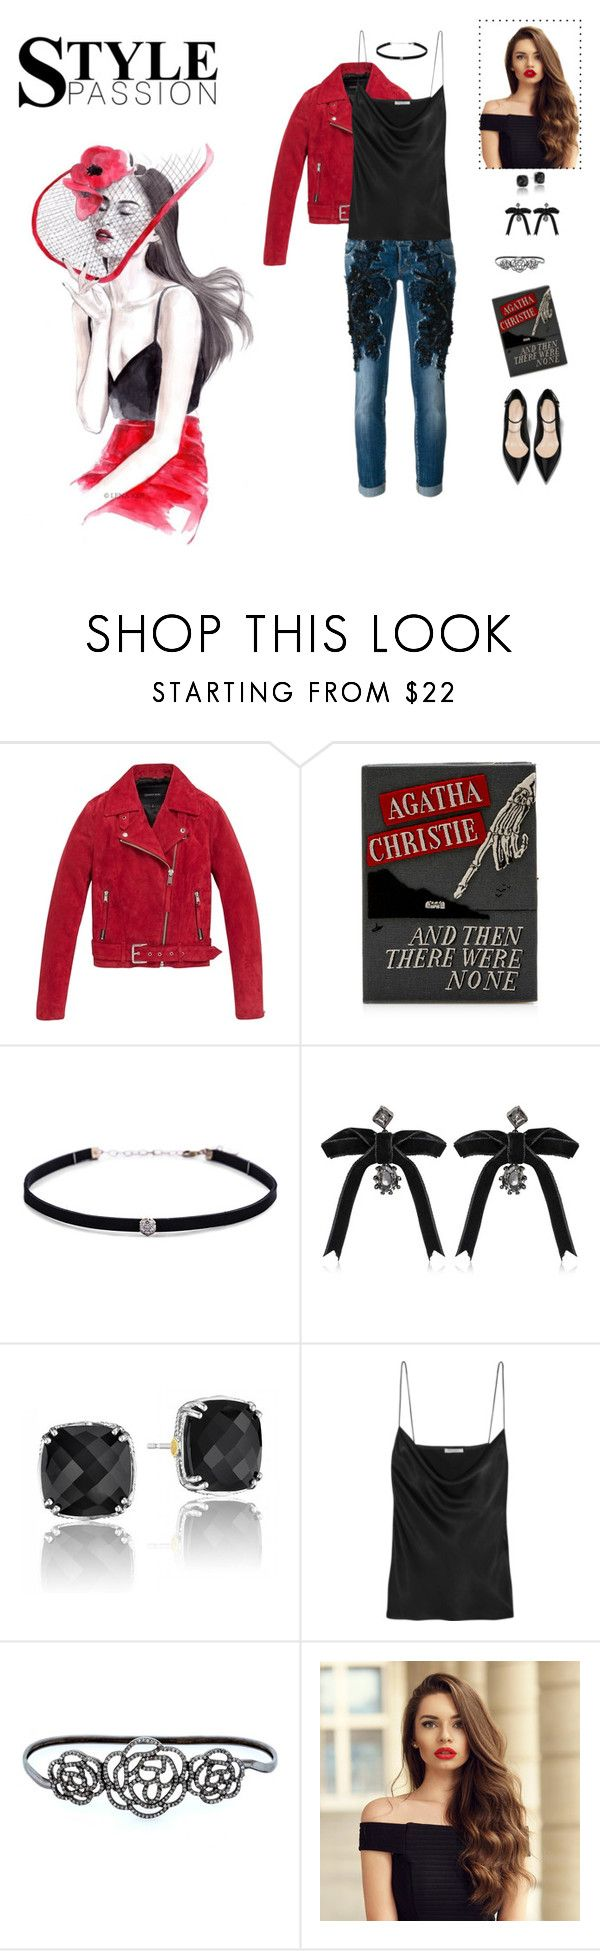 """""""And Then There Were None...."""" by livdeaton ❤ liked on Polyvore featuring Andrew Marc, Olympia Le-Tan, Carbon & Hyde, Dsquared2, Tacori, Protagonist, Nush, Lime Crime, red and lace"""